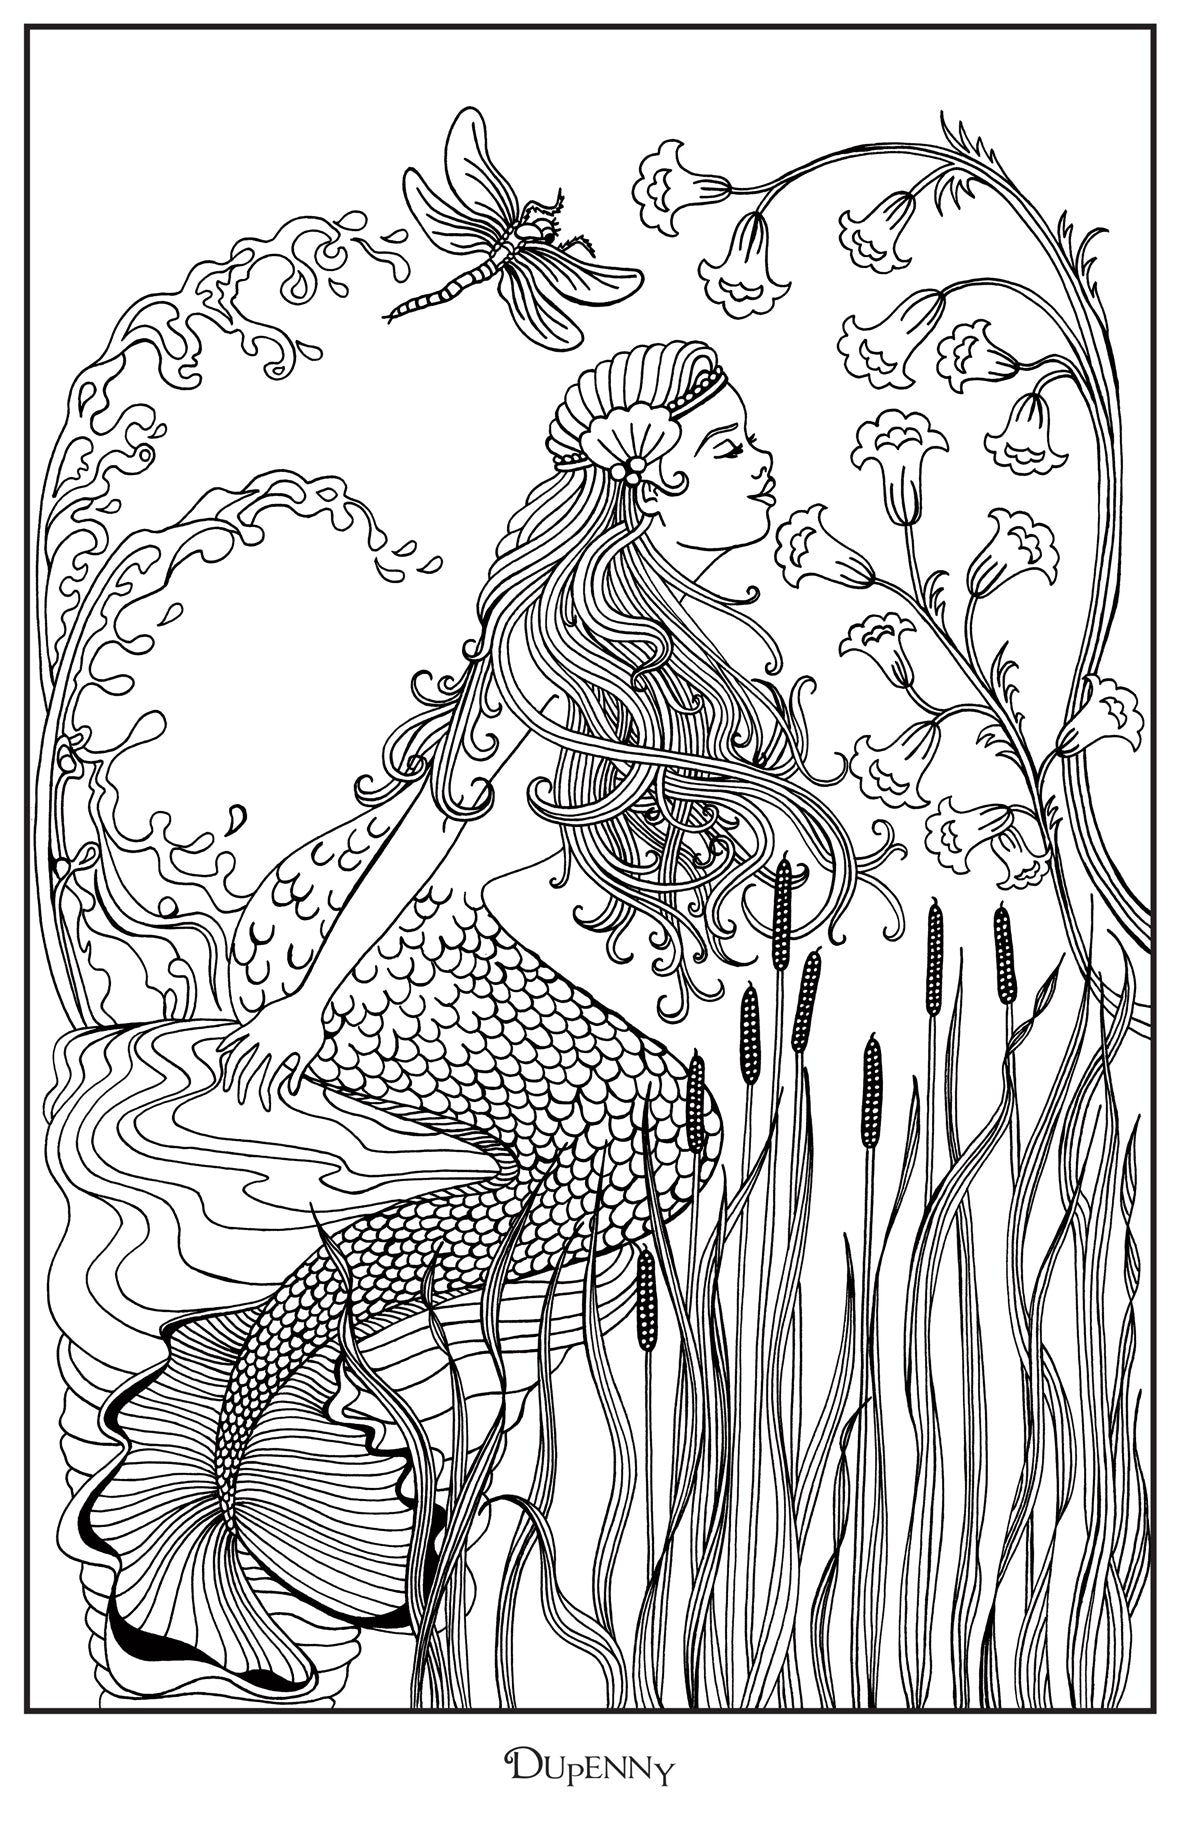 Dupenny A4 Mermaid 'Oceane' Colouring Poster FREE